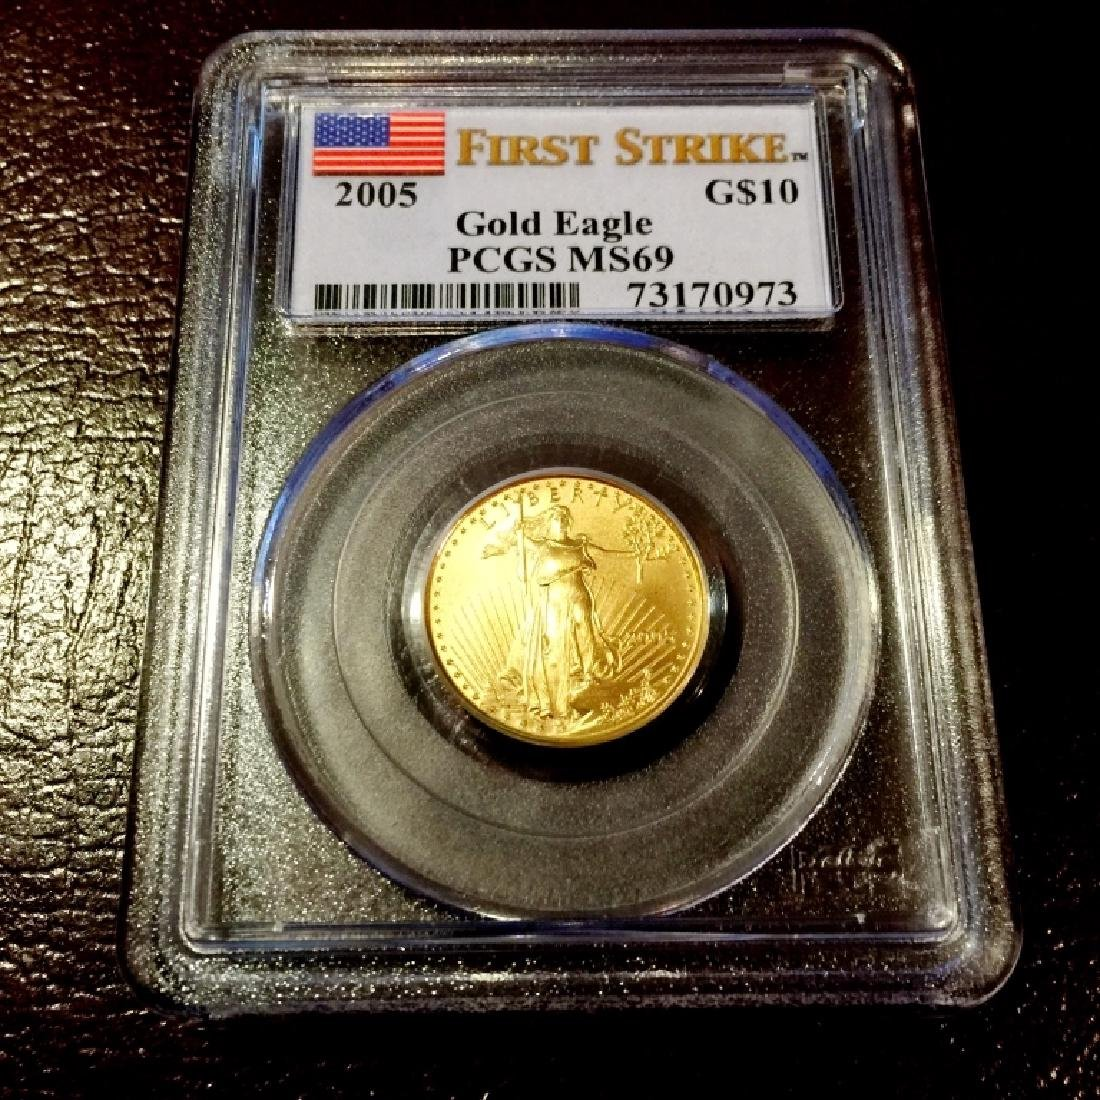 2005 MS 69 First Strikes $ 10 Gold Eagle - PCGS